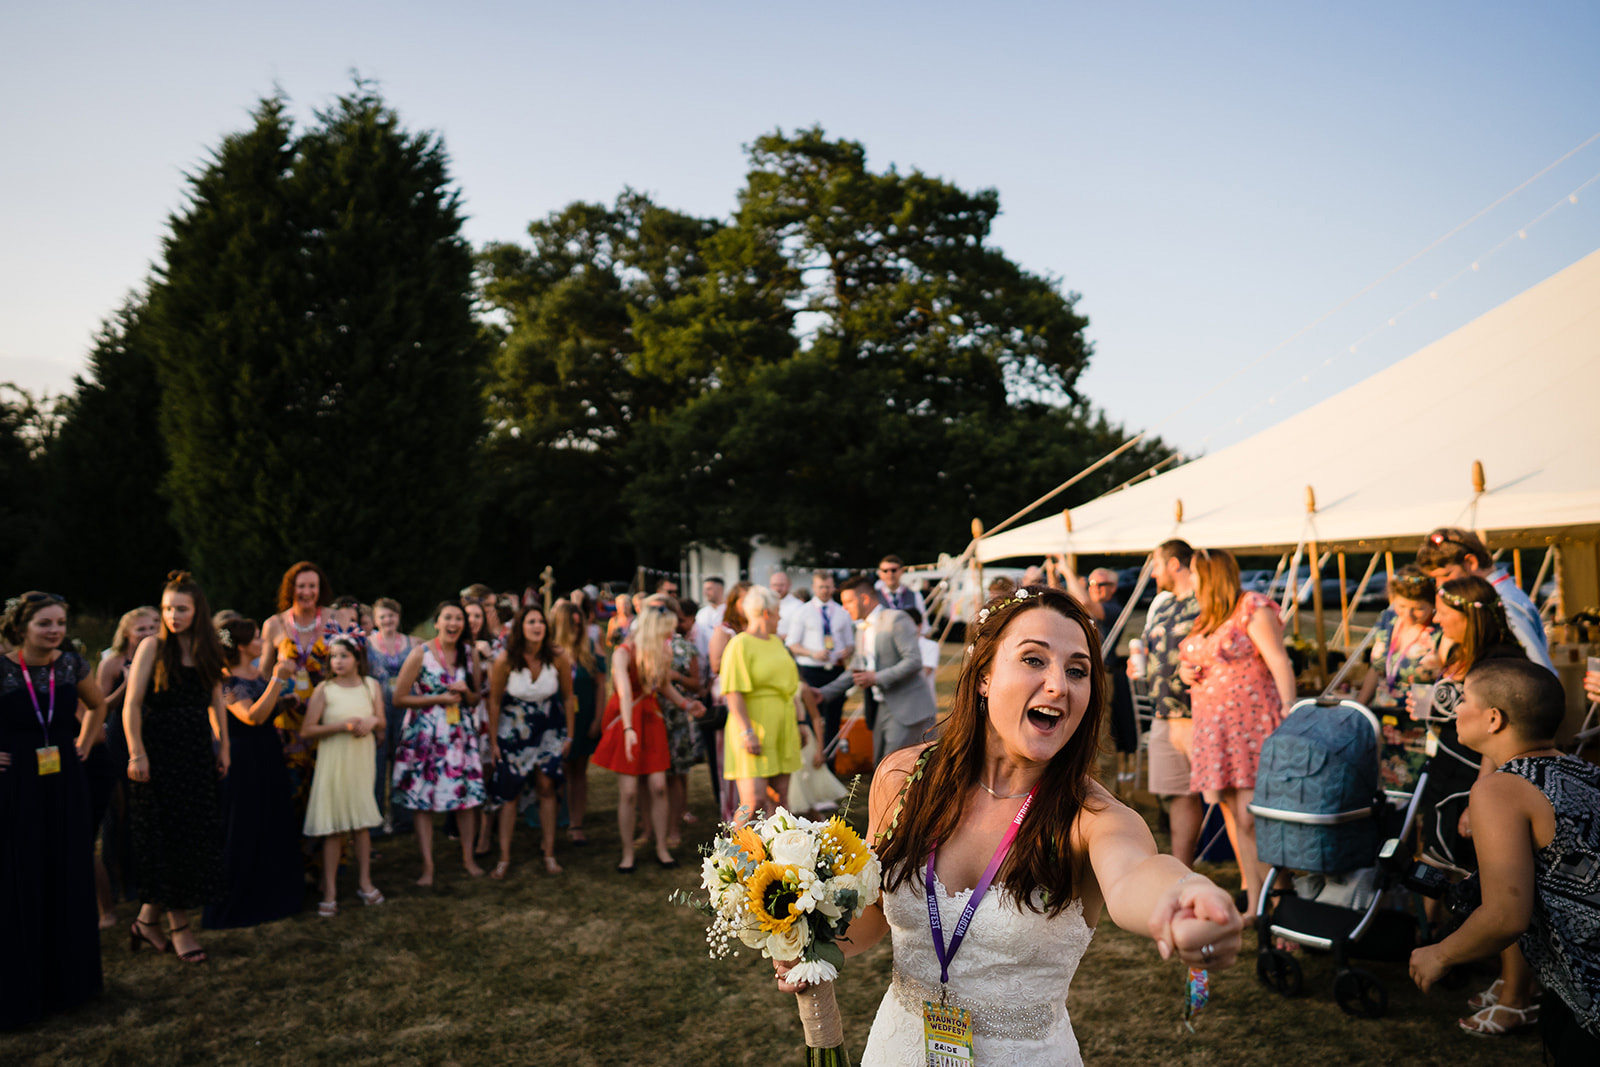 festival bride flower bouquet throwing